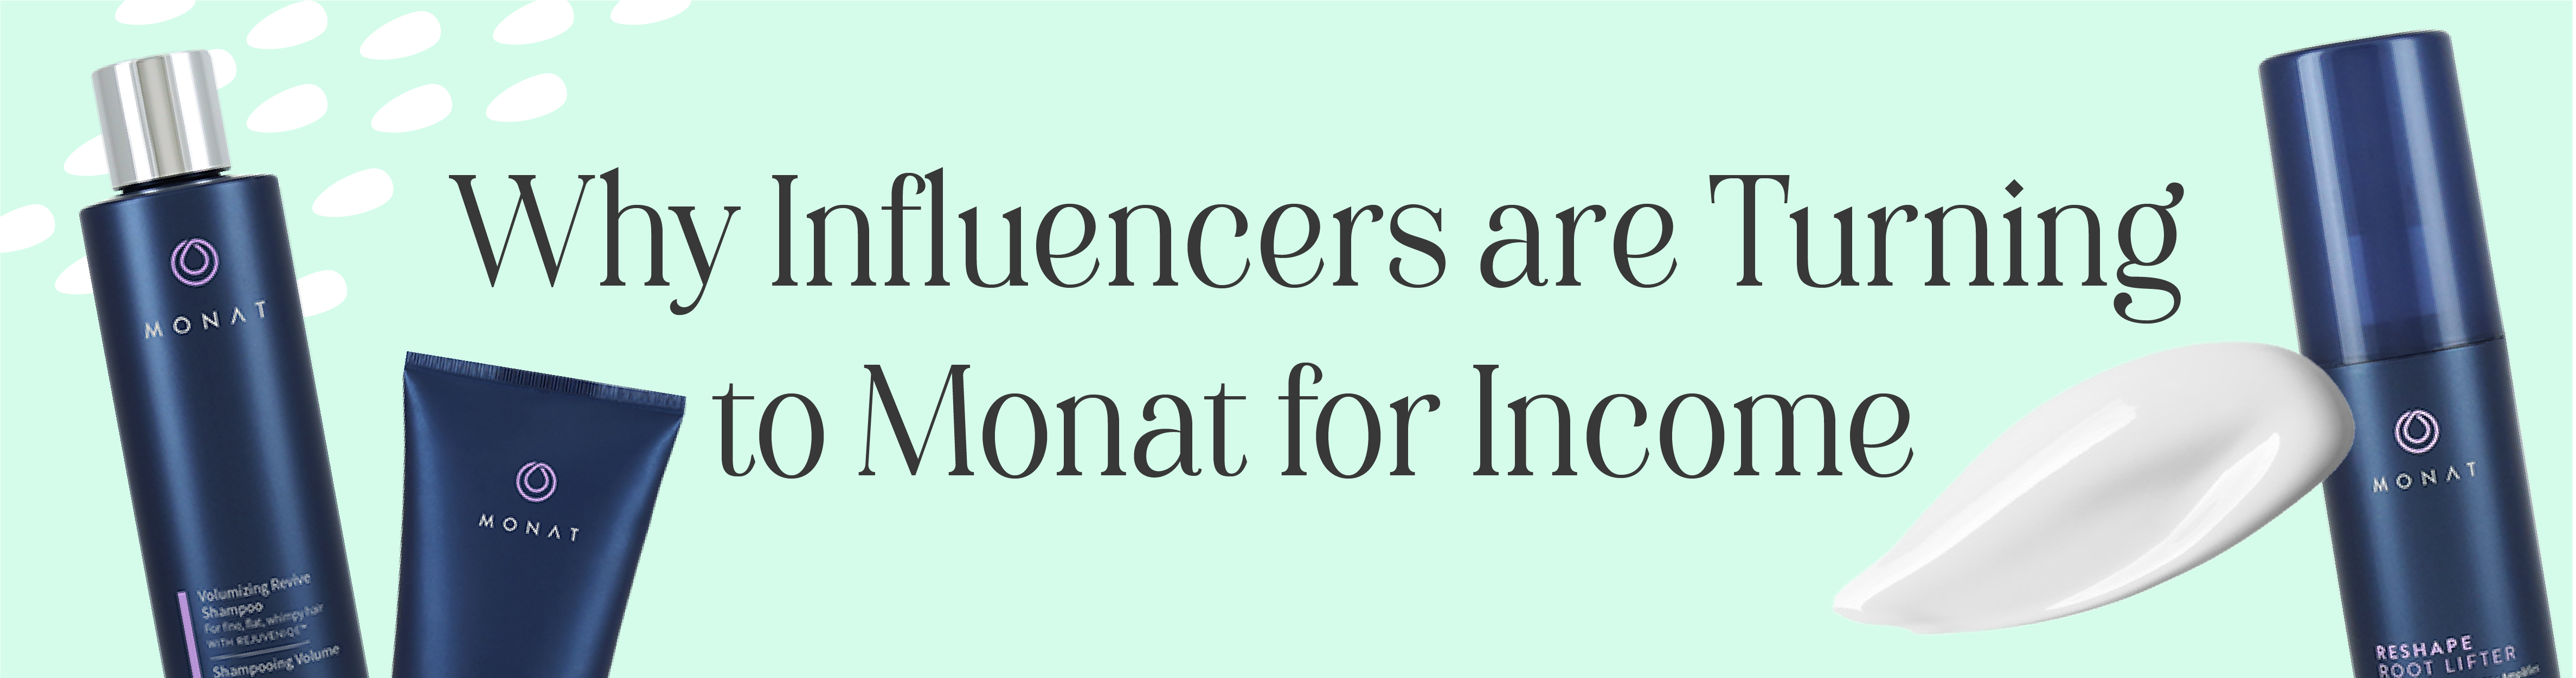 Why Influencers are Turning to Monat for Incom